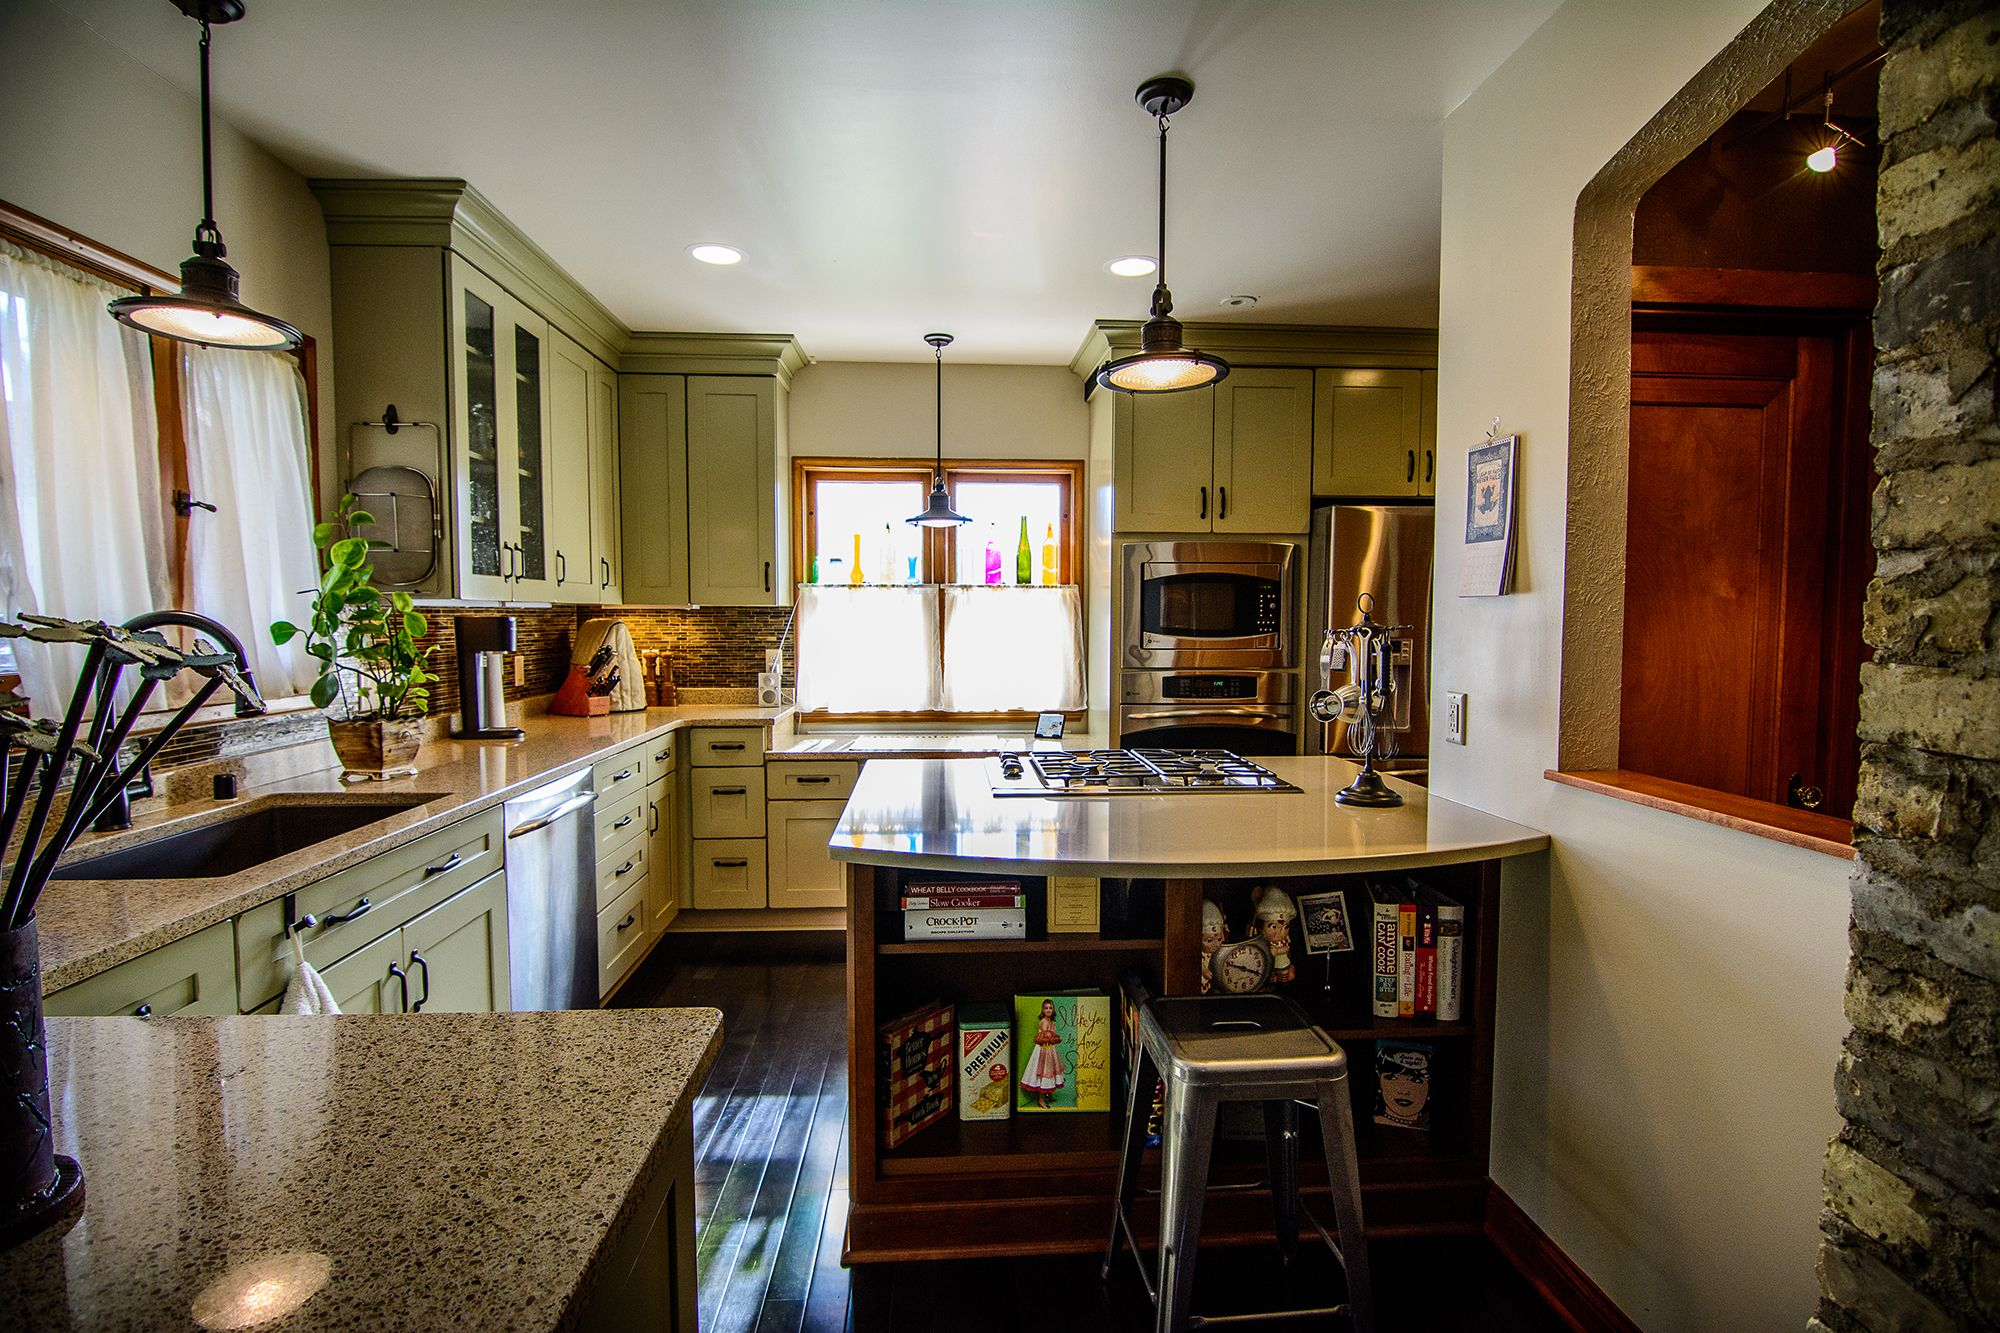 WAUWATOSA KITCHEN REMODEL